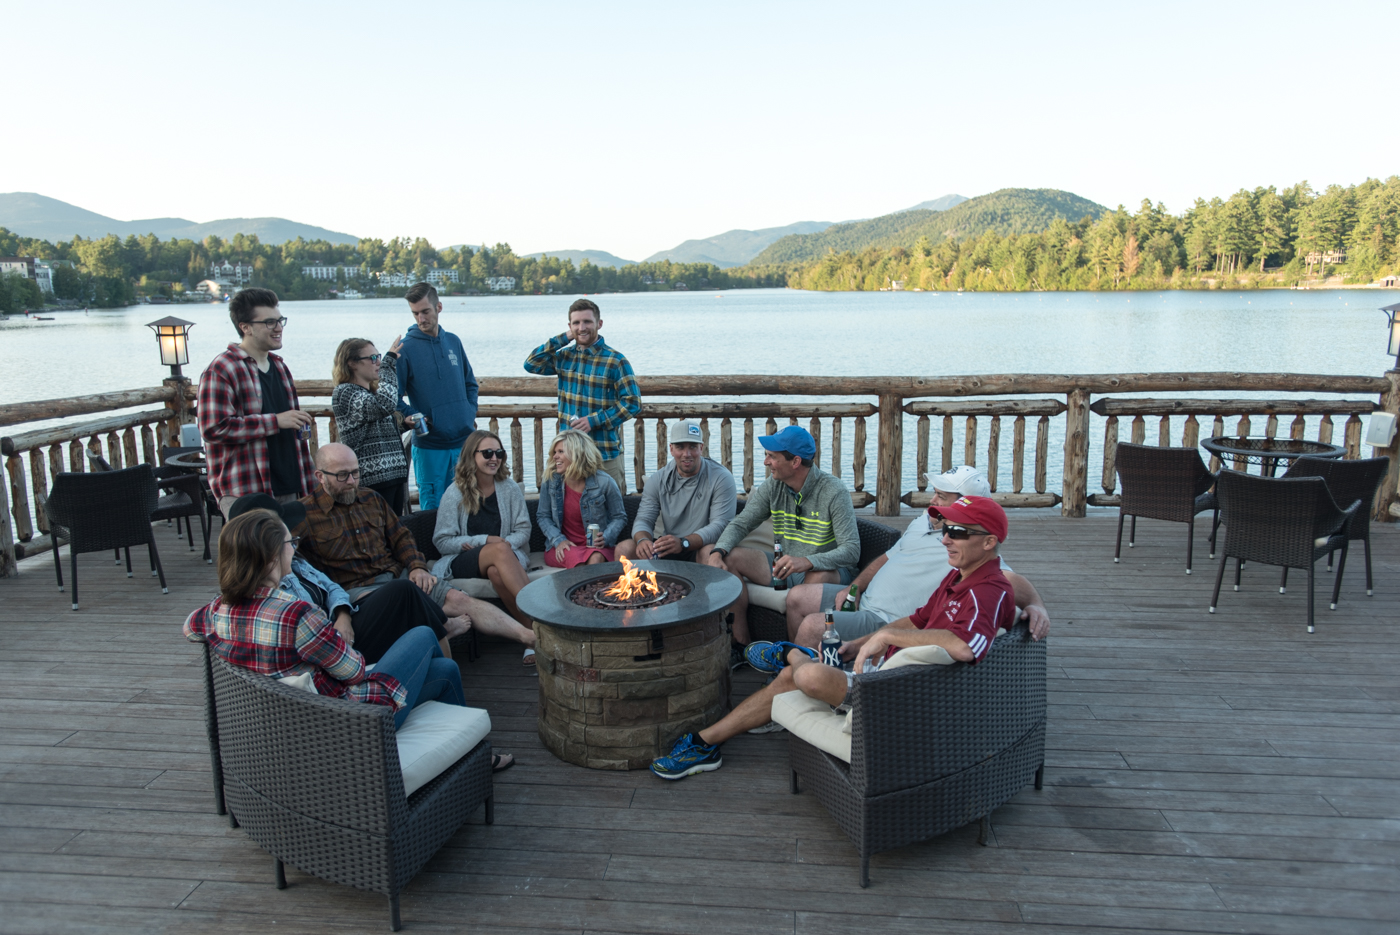 friends hanging out by firepit on boathouse